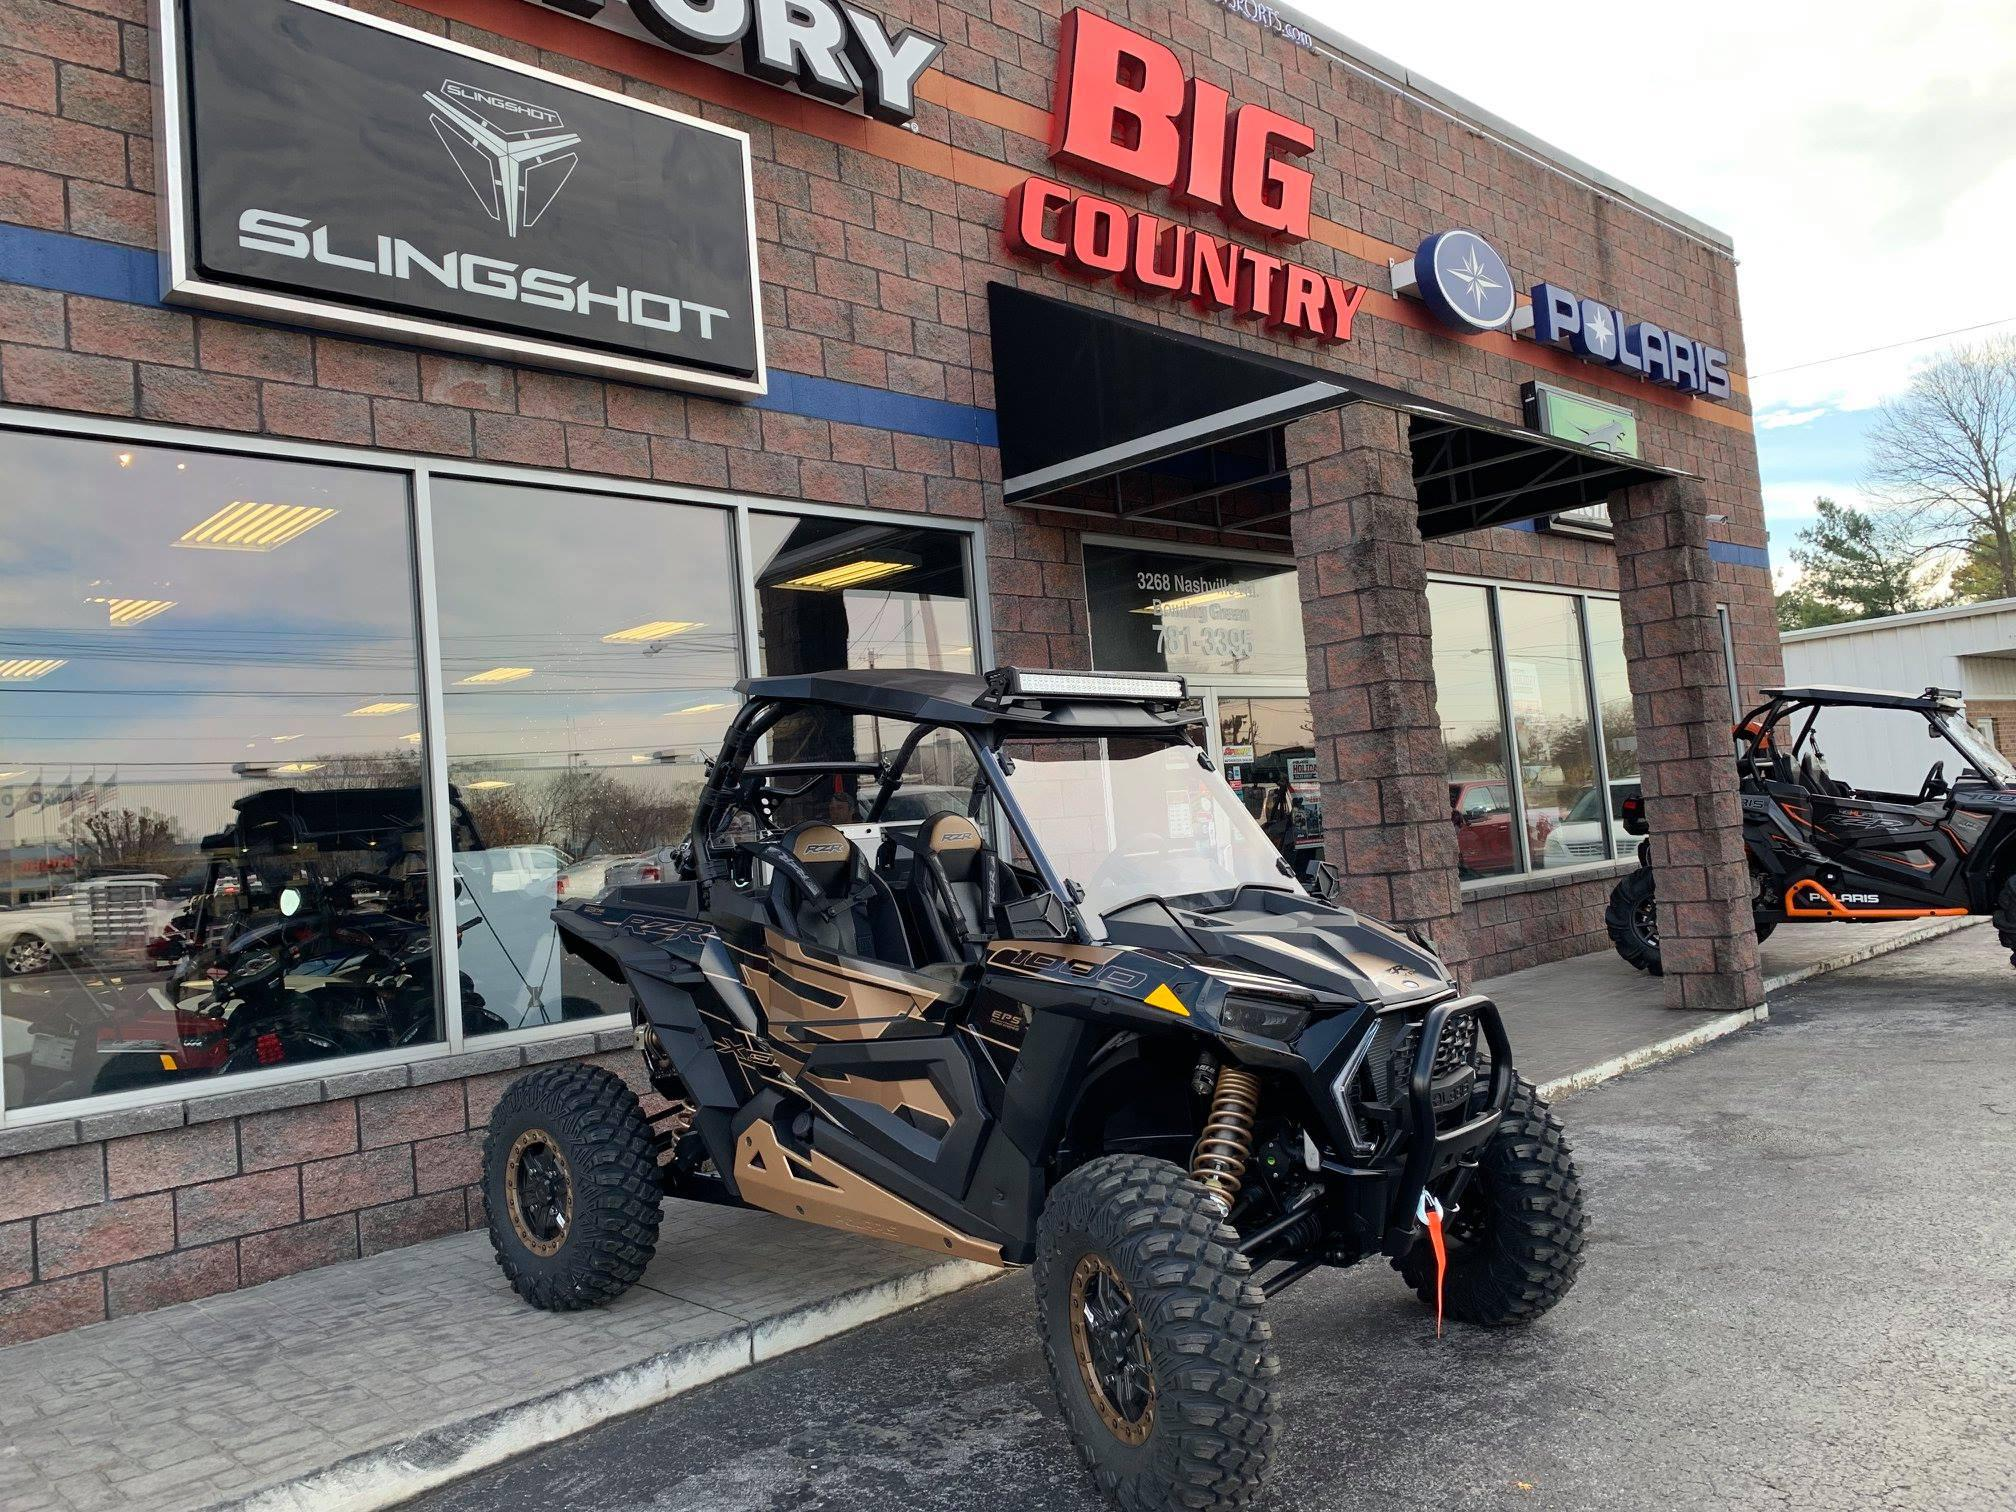 Big Country Powersports image 0